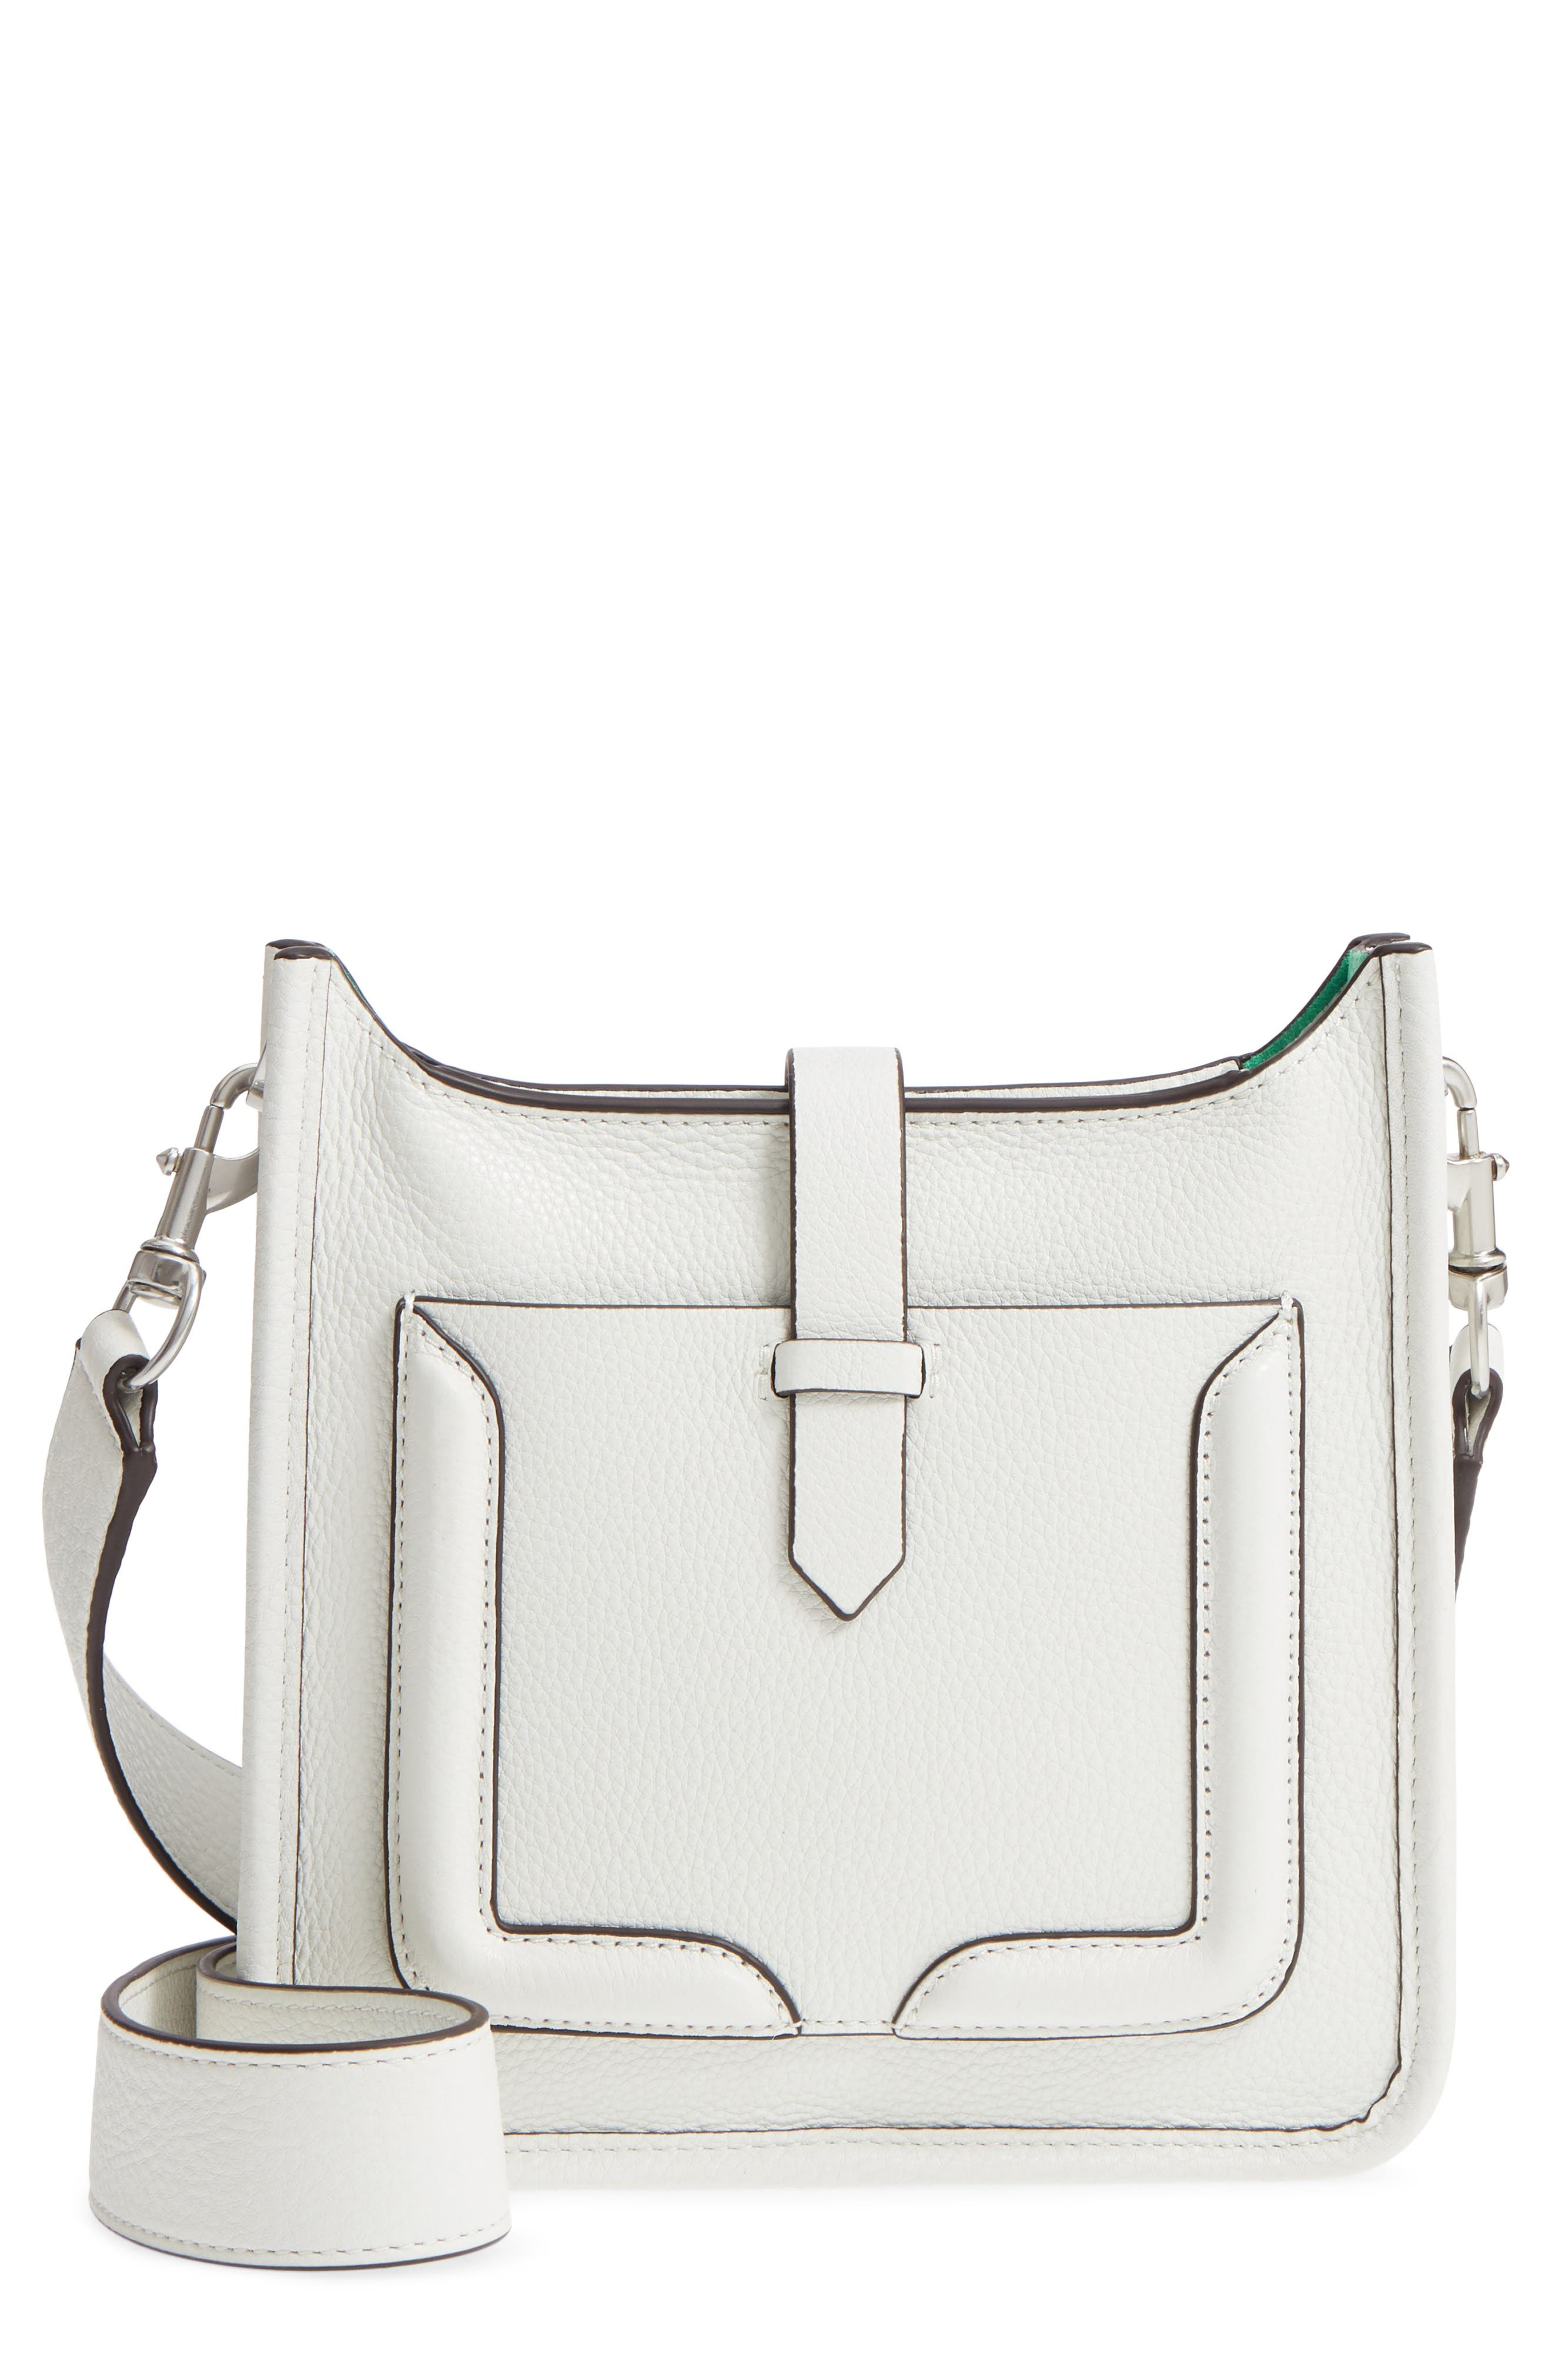 Mini Unlined Leather Feed Bag,                         Main,                         color, Bianco/ Green